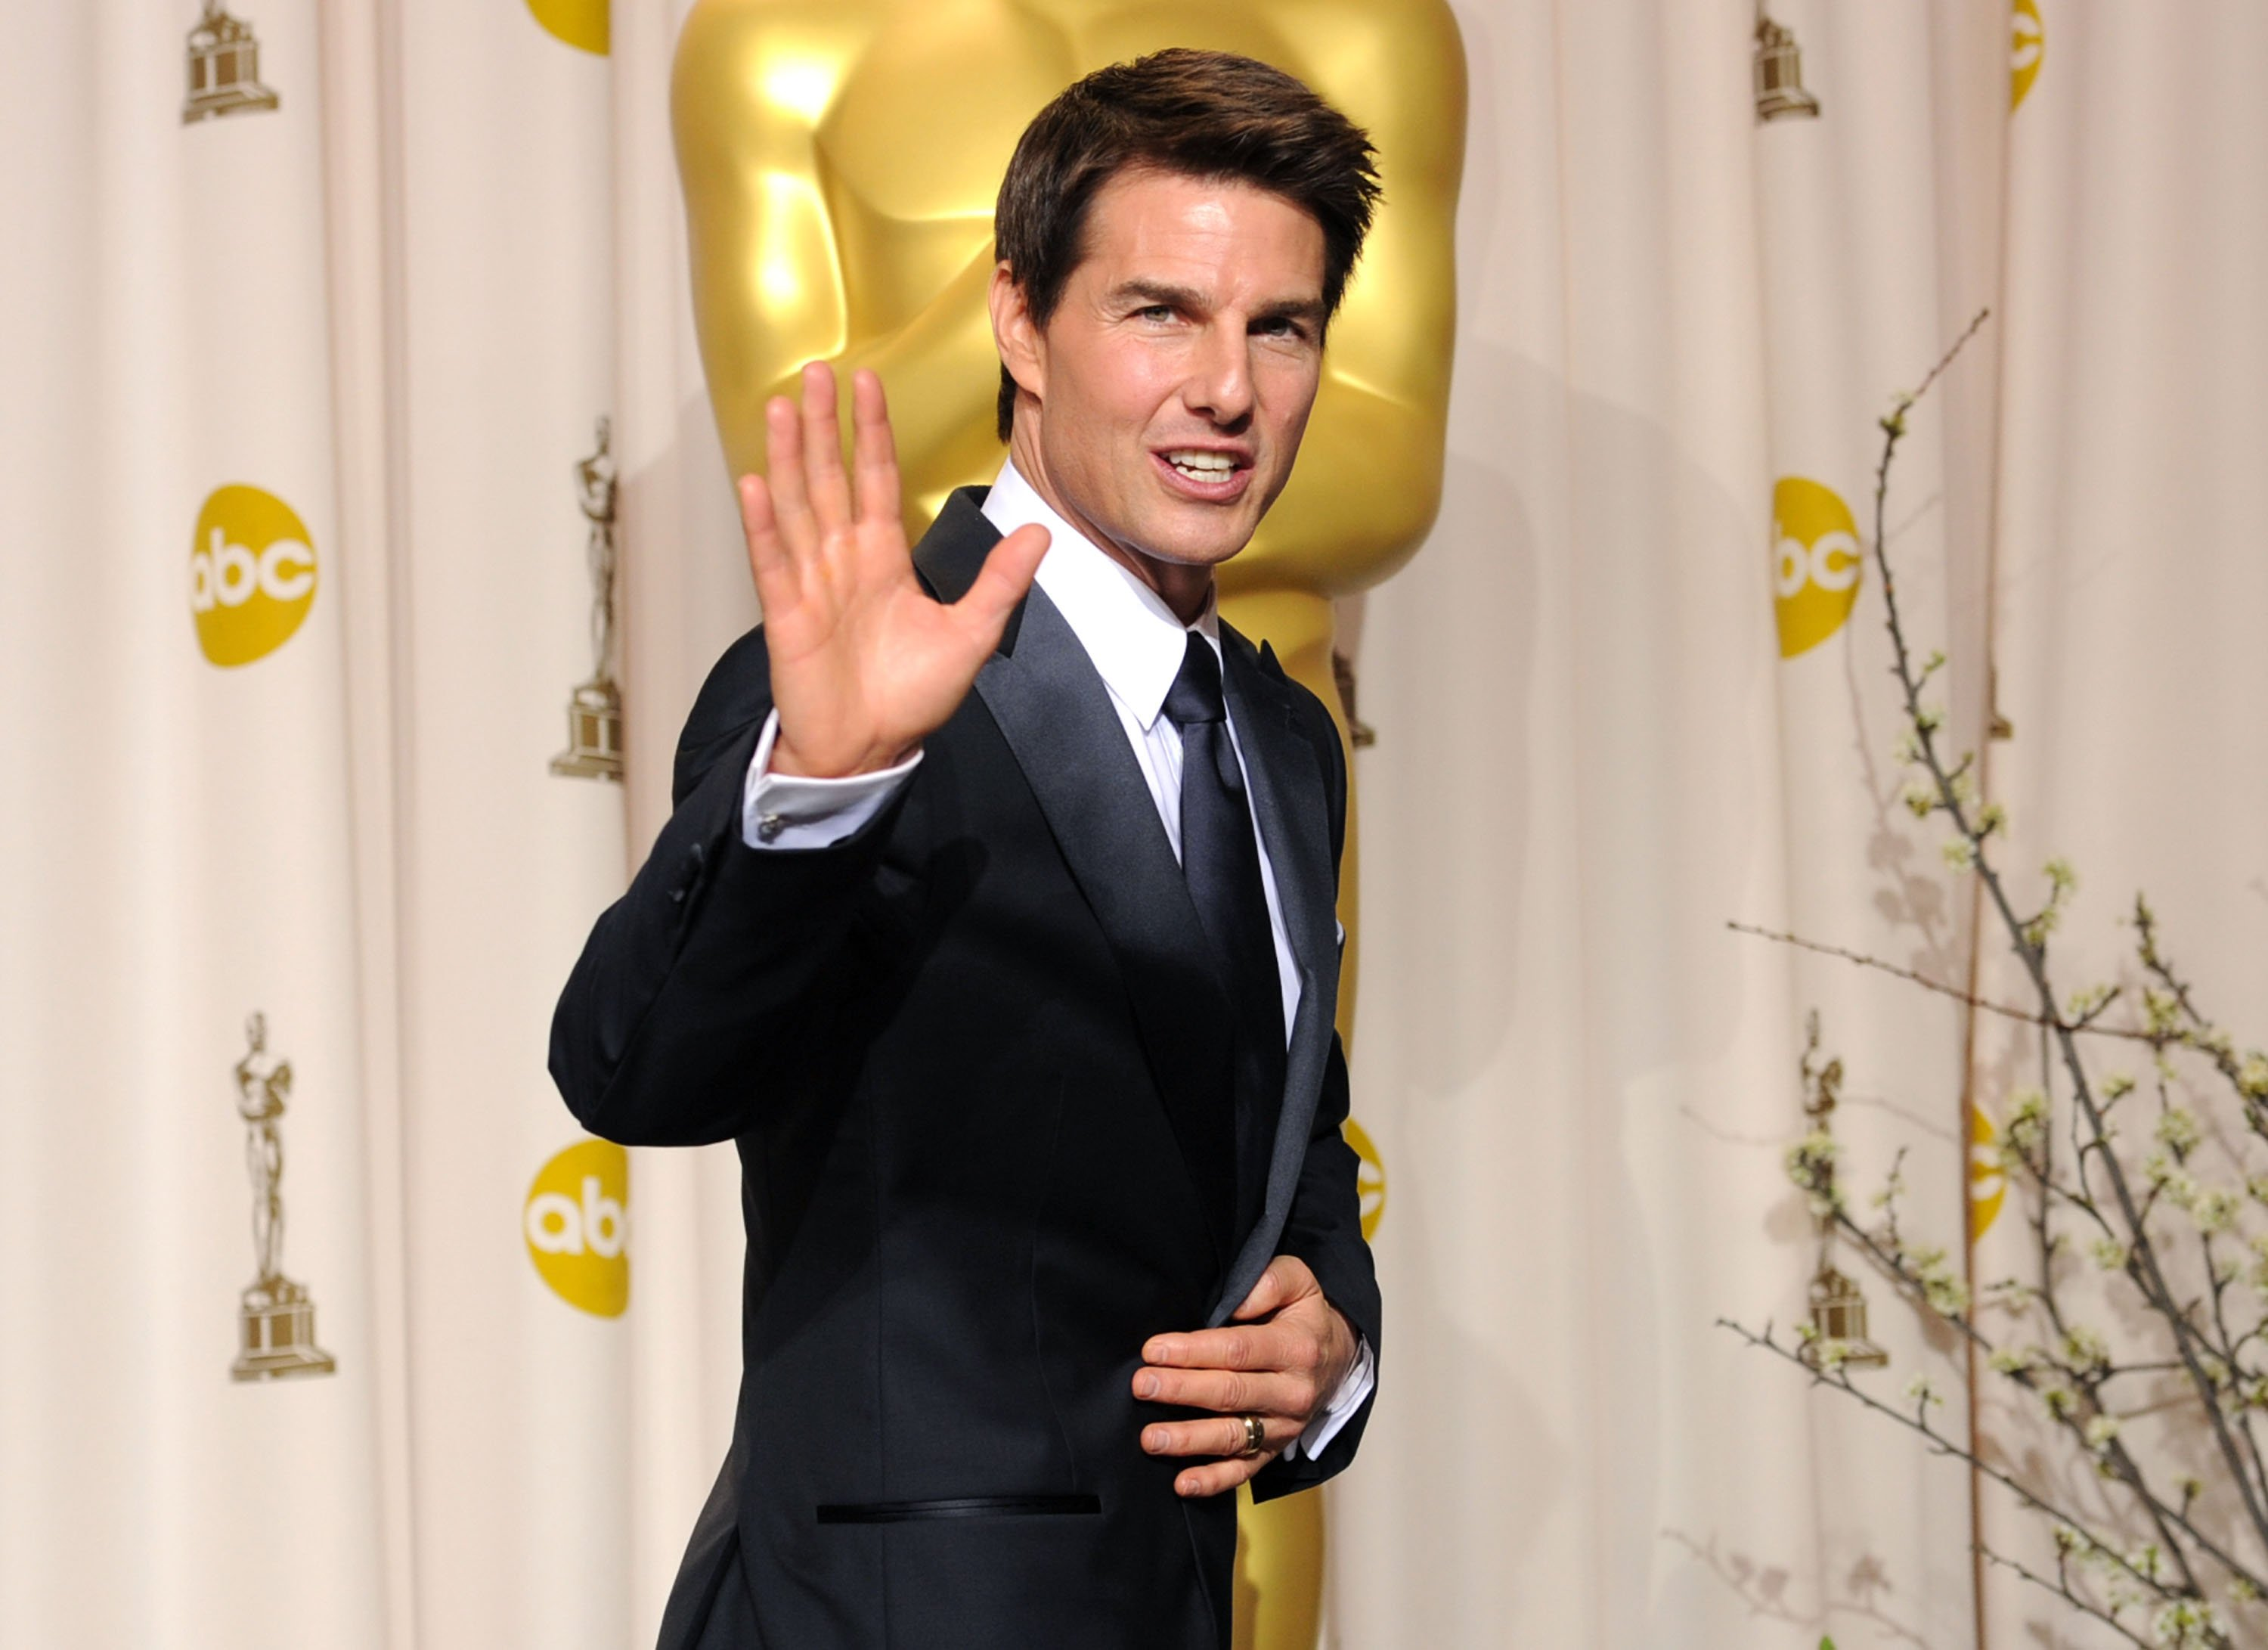 Action star Tom Cruise faces the press during the 2012 Annual Academy Awards in Hollywood, California. | Photo: Getty Images